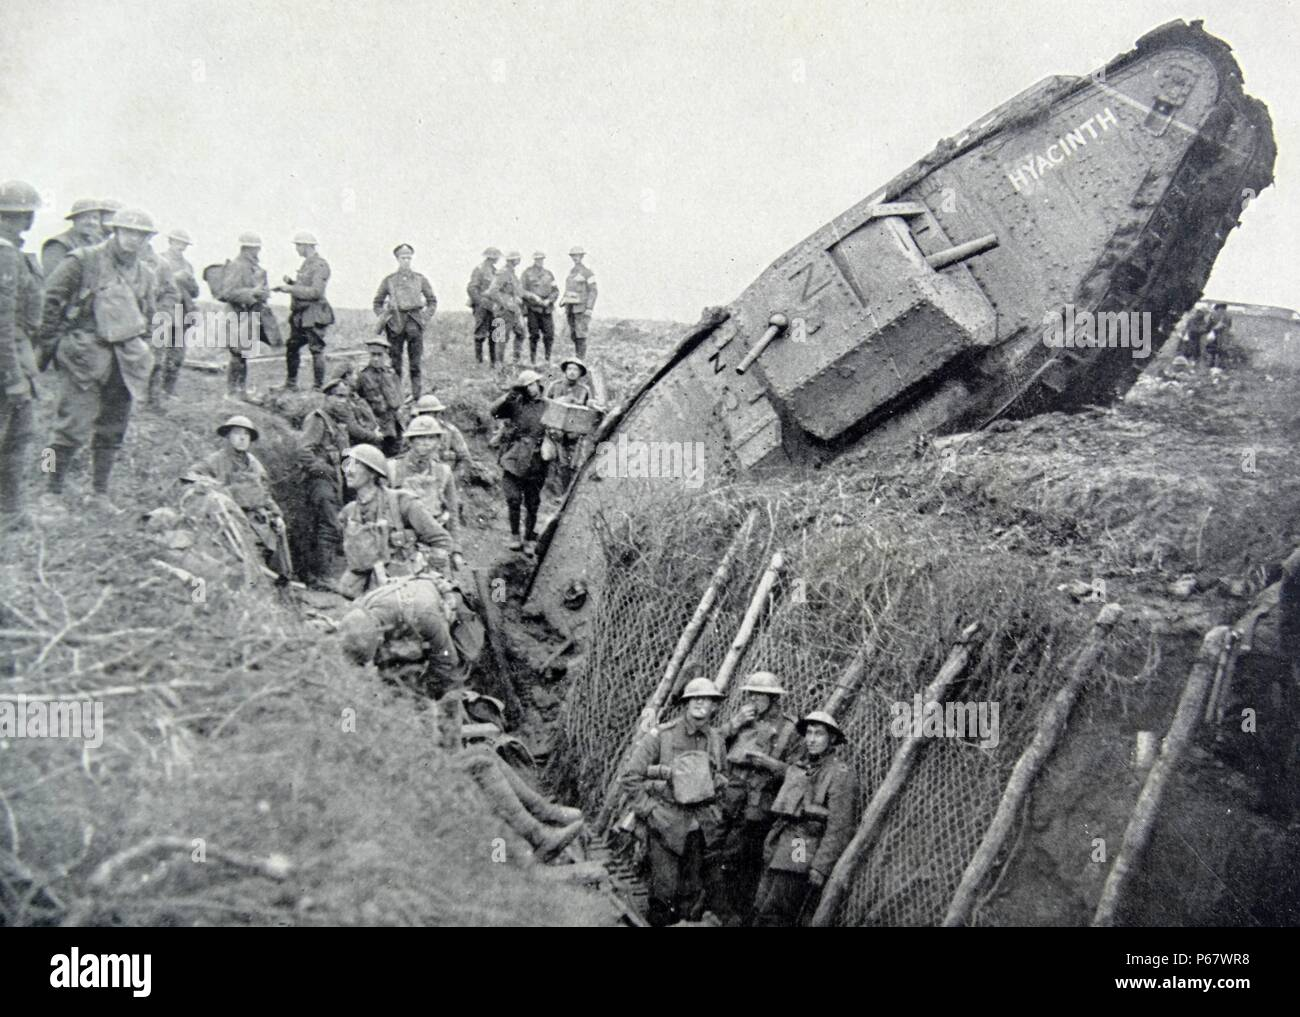 First World War, German Mark IV tank 'Hyacinth' stuck in a trench to the west of Ribecourt. November 20, 1917 - Stock Image